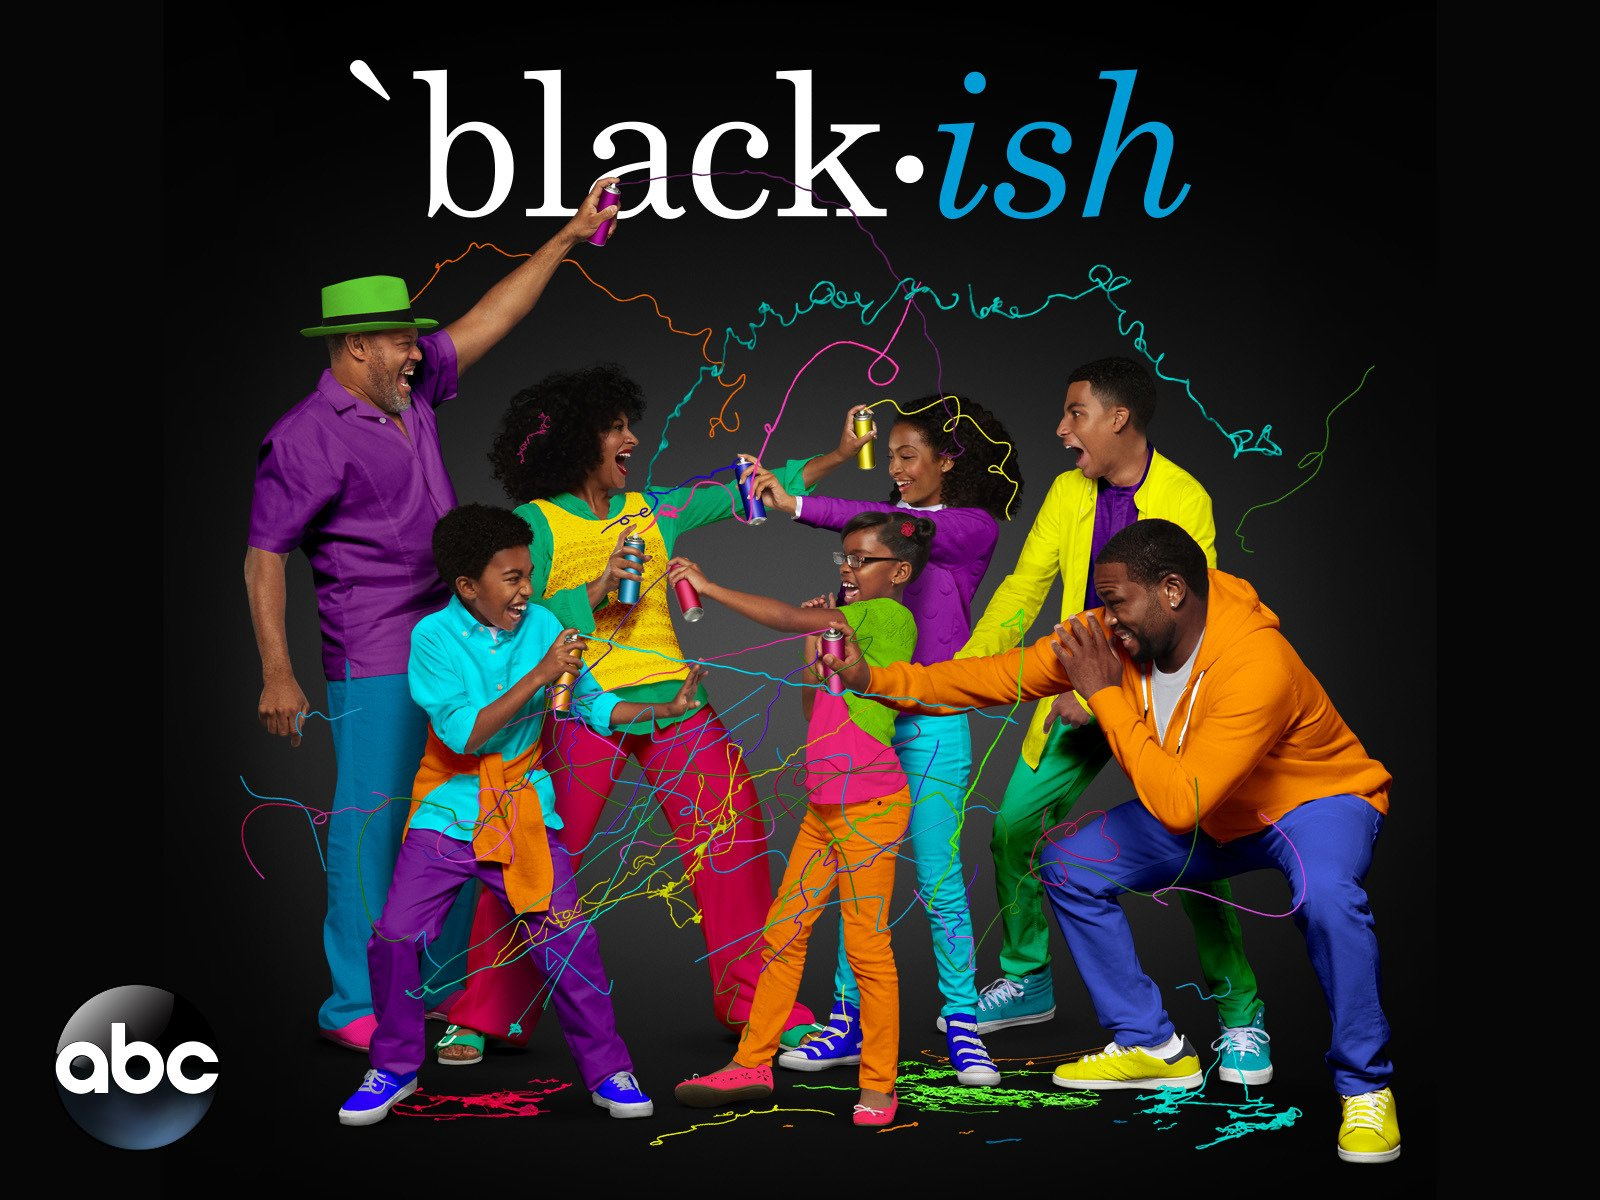 black-ish Season 2 - Season 2